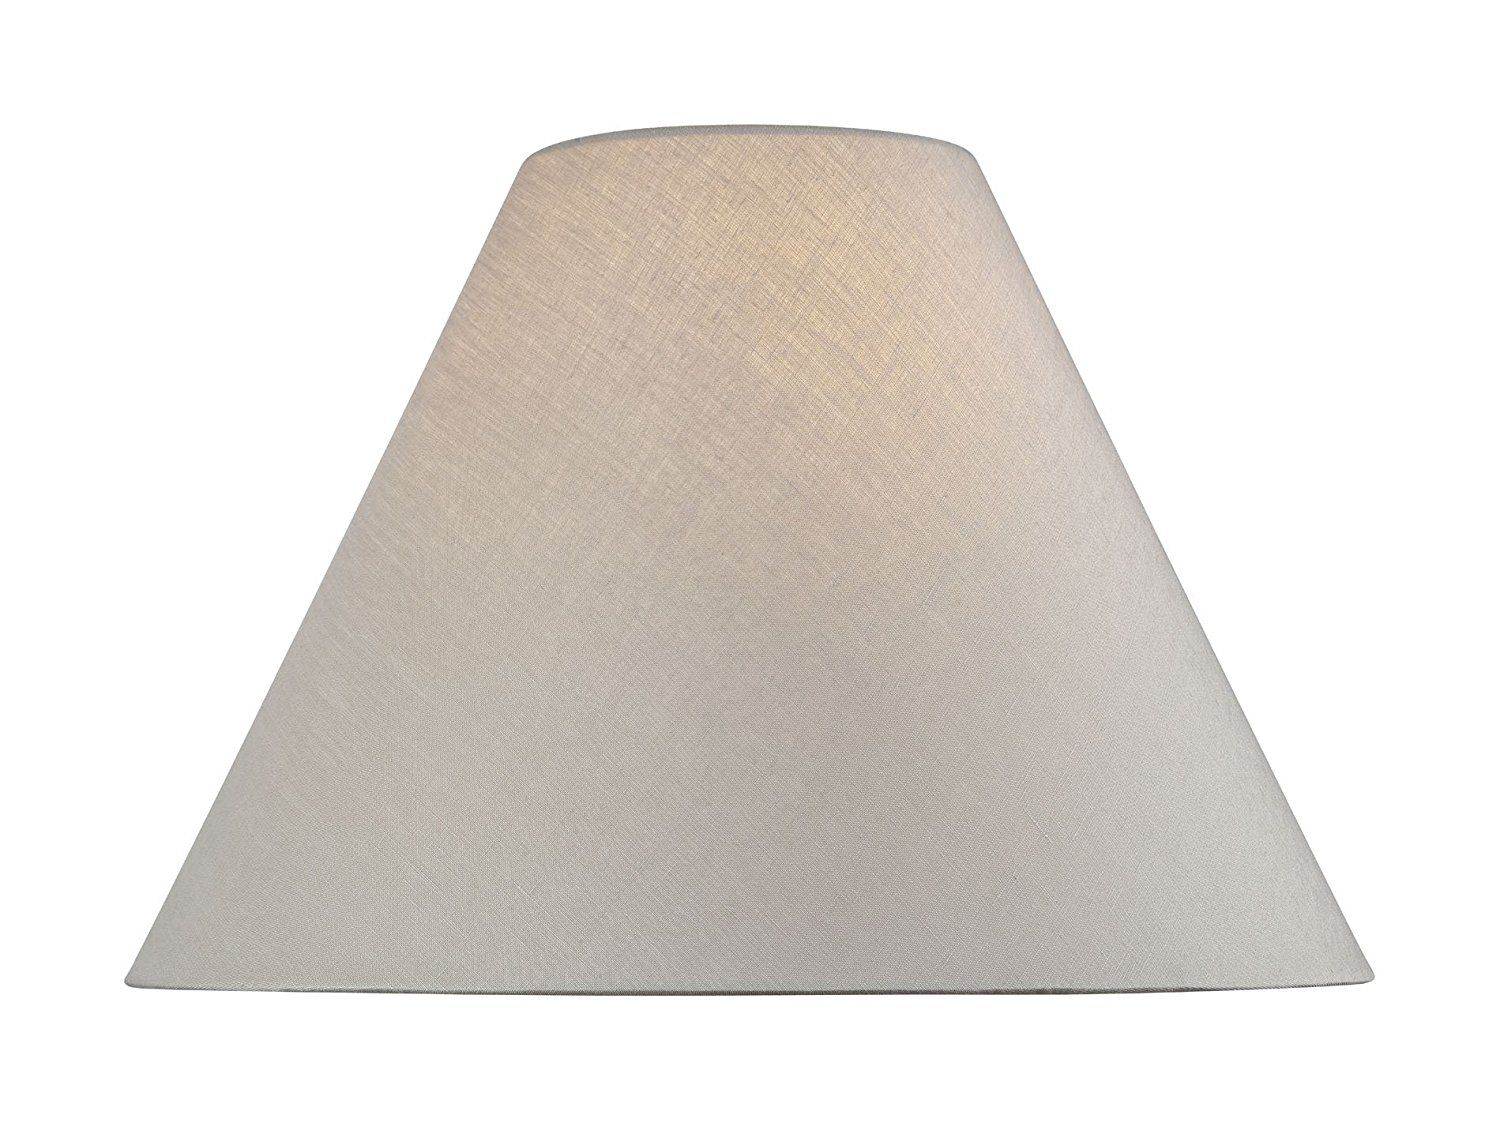 Lite source ch1211 16 16 inch lamp shade linen empire be sure lite source ch1211 16 16 inch lamp shade linen empire aloadofball Image collections